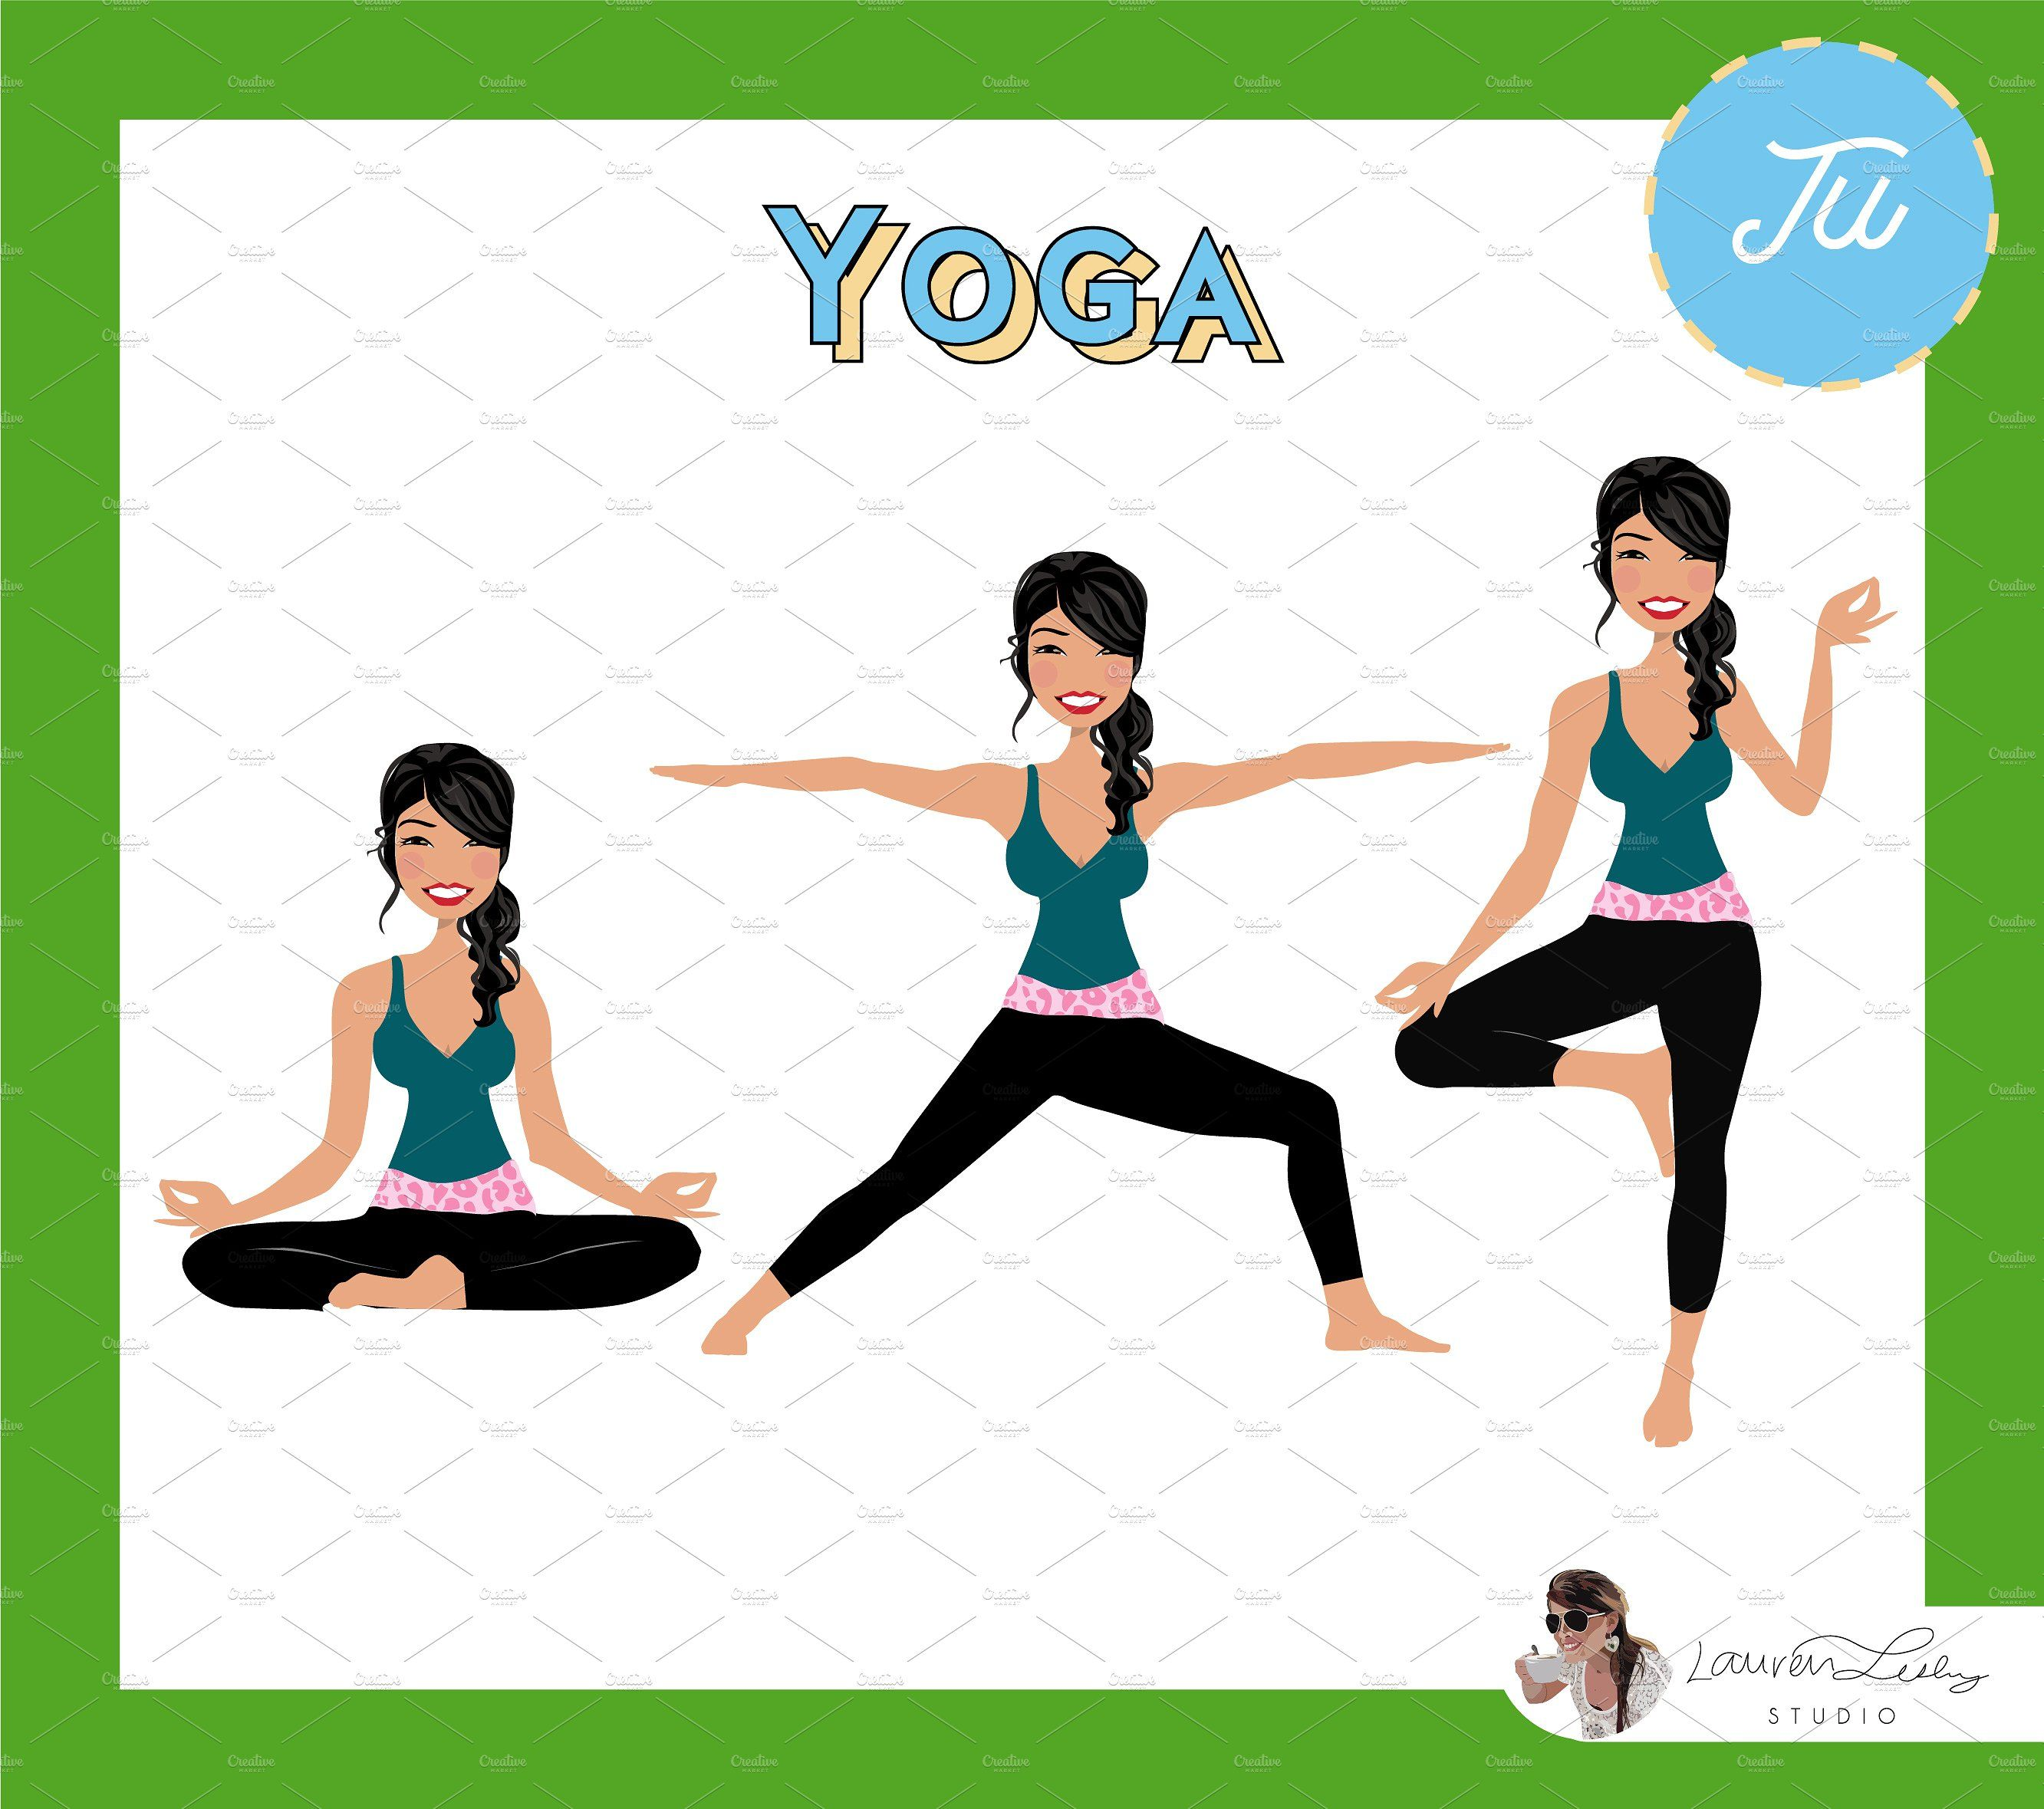 Yoga Teacher Portrait Creator Yoga Challenge Poses Yoga Poses Pictures Yoga Teacher